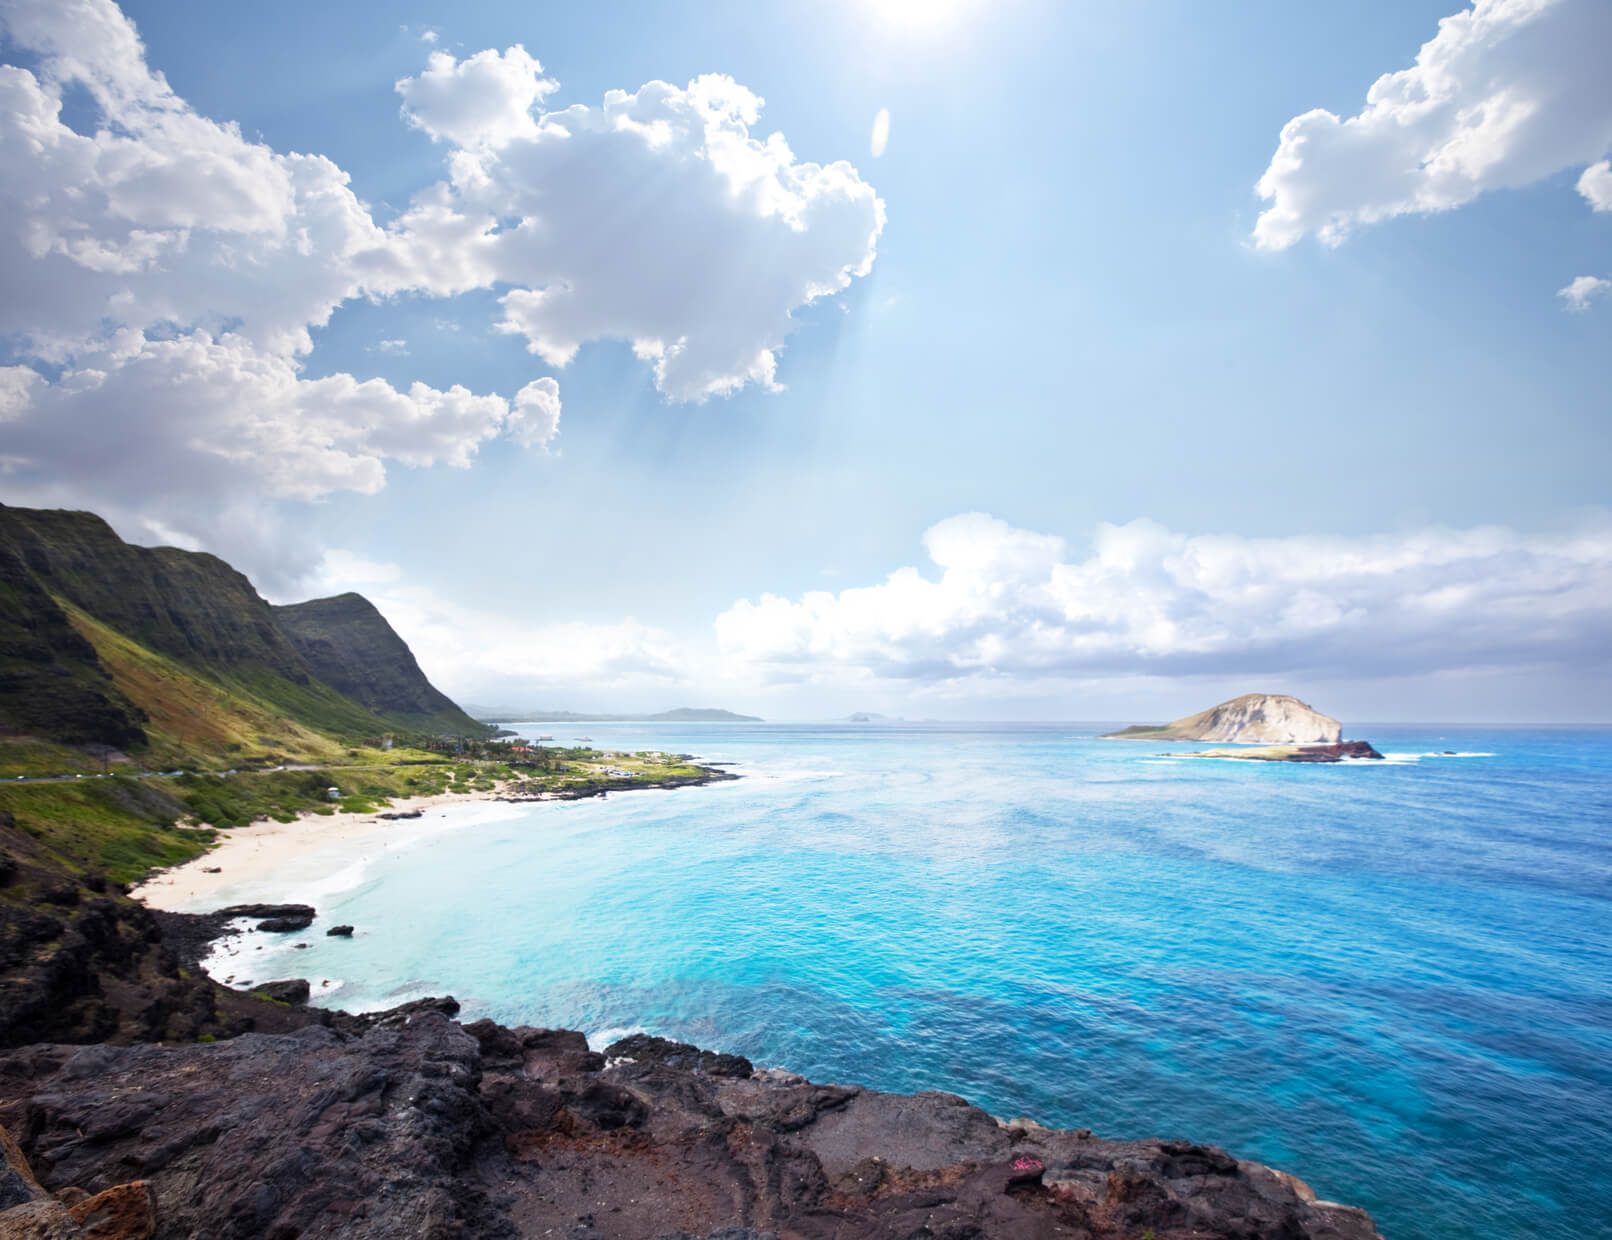 HOT!! Frankfurt, Germany to Hawaii for only €399 roundtrip